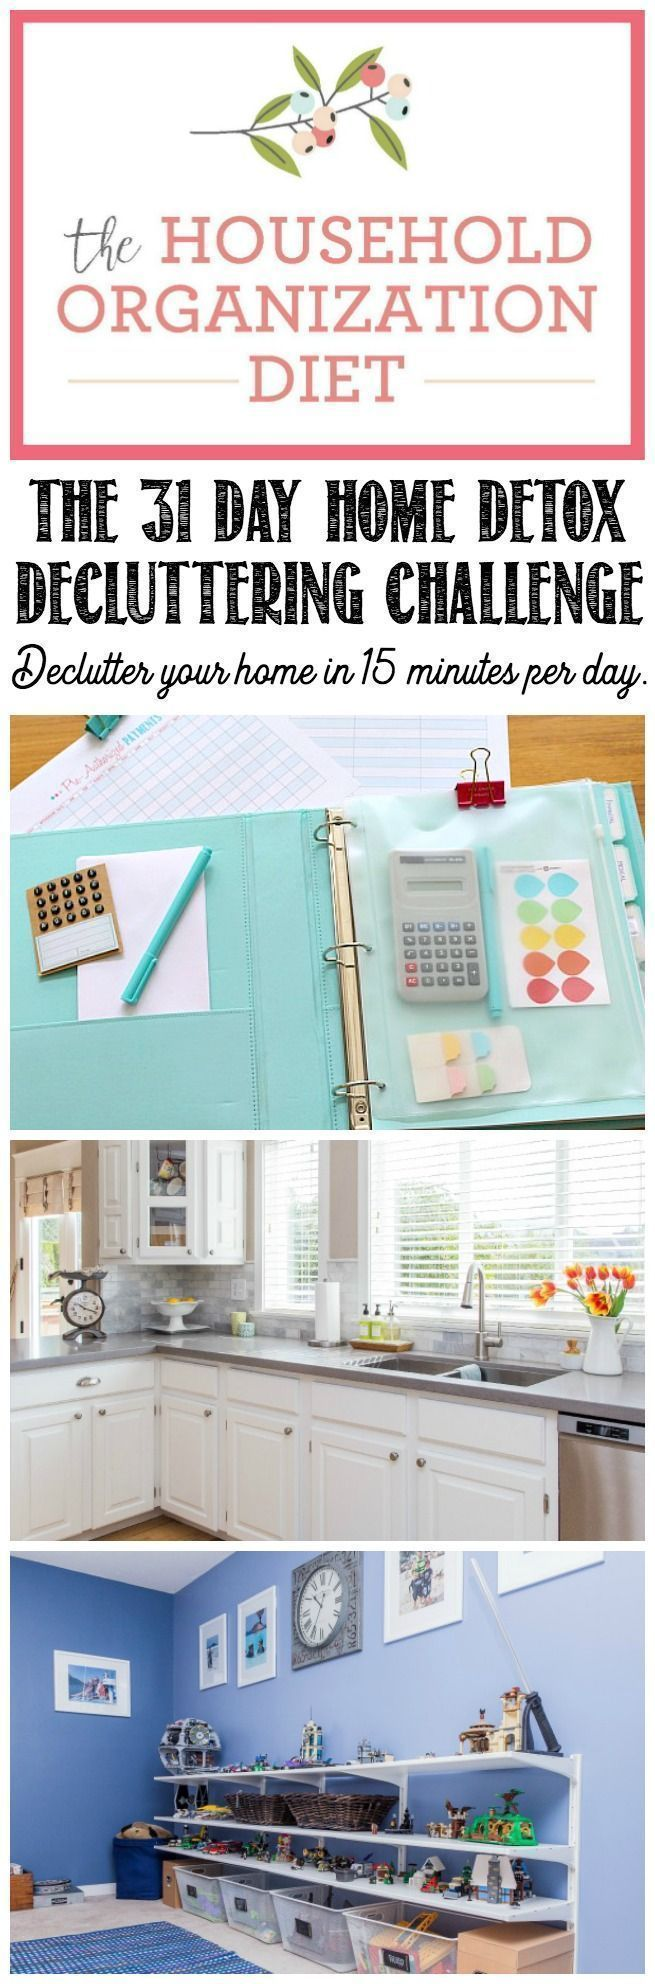 621 best ✽ Clean & Organize! images on Pinterest | Cleaning ...